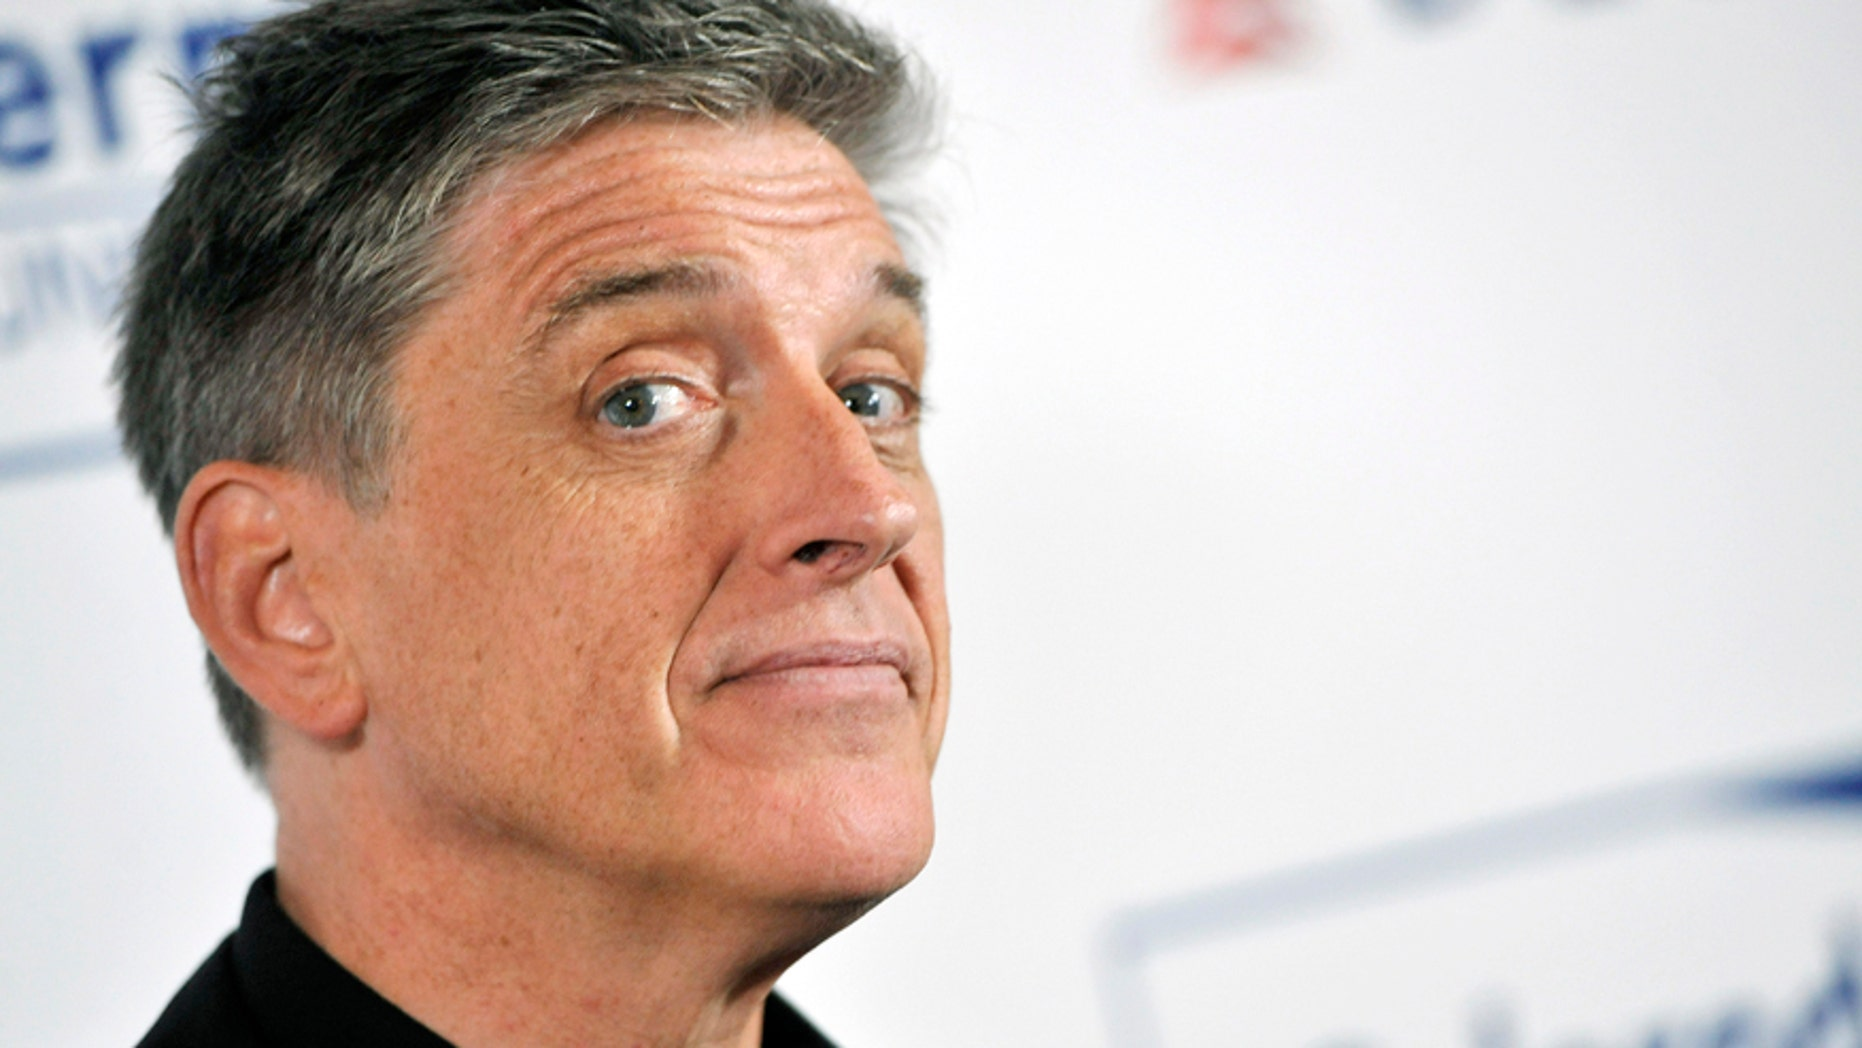 In this April 30, 2013, file photo, comedian Craig Ferguson poses at the Cool Comedy's Hot Cuisine Benefit for the Scleroderma Research Foundation at the Four Seasons Hotel in Beverly Hills, Calif.